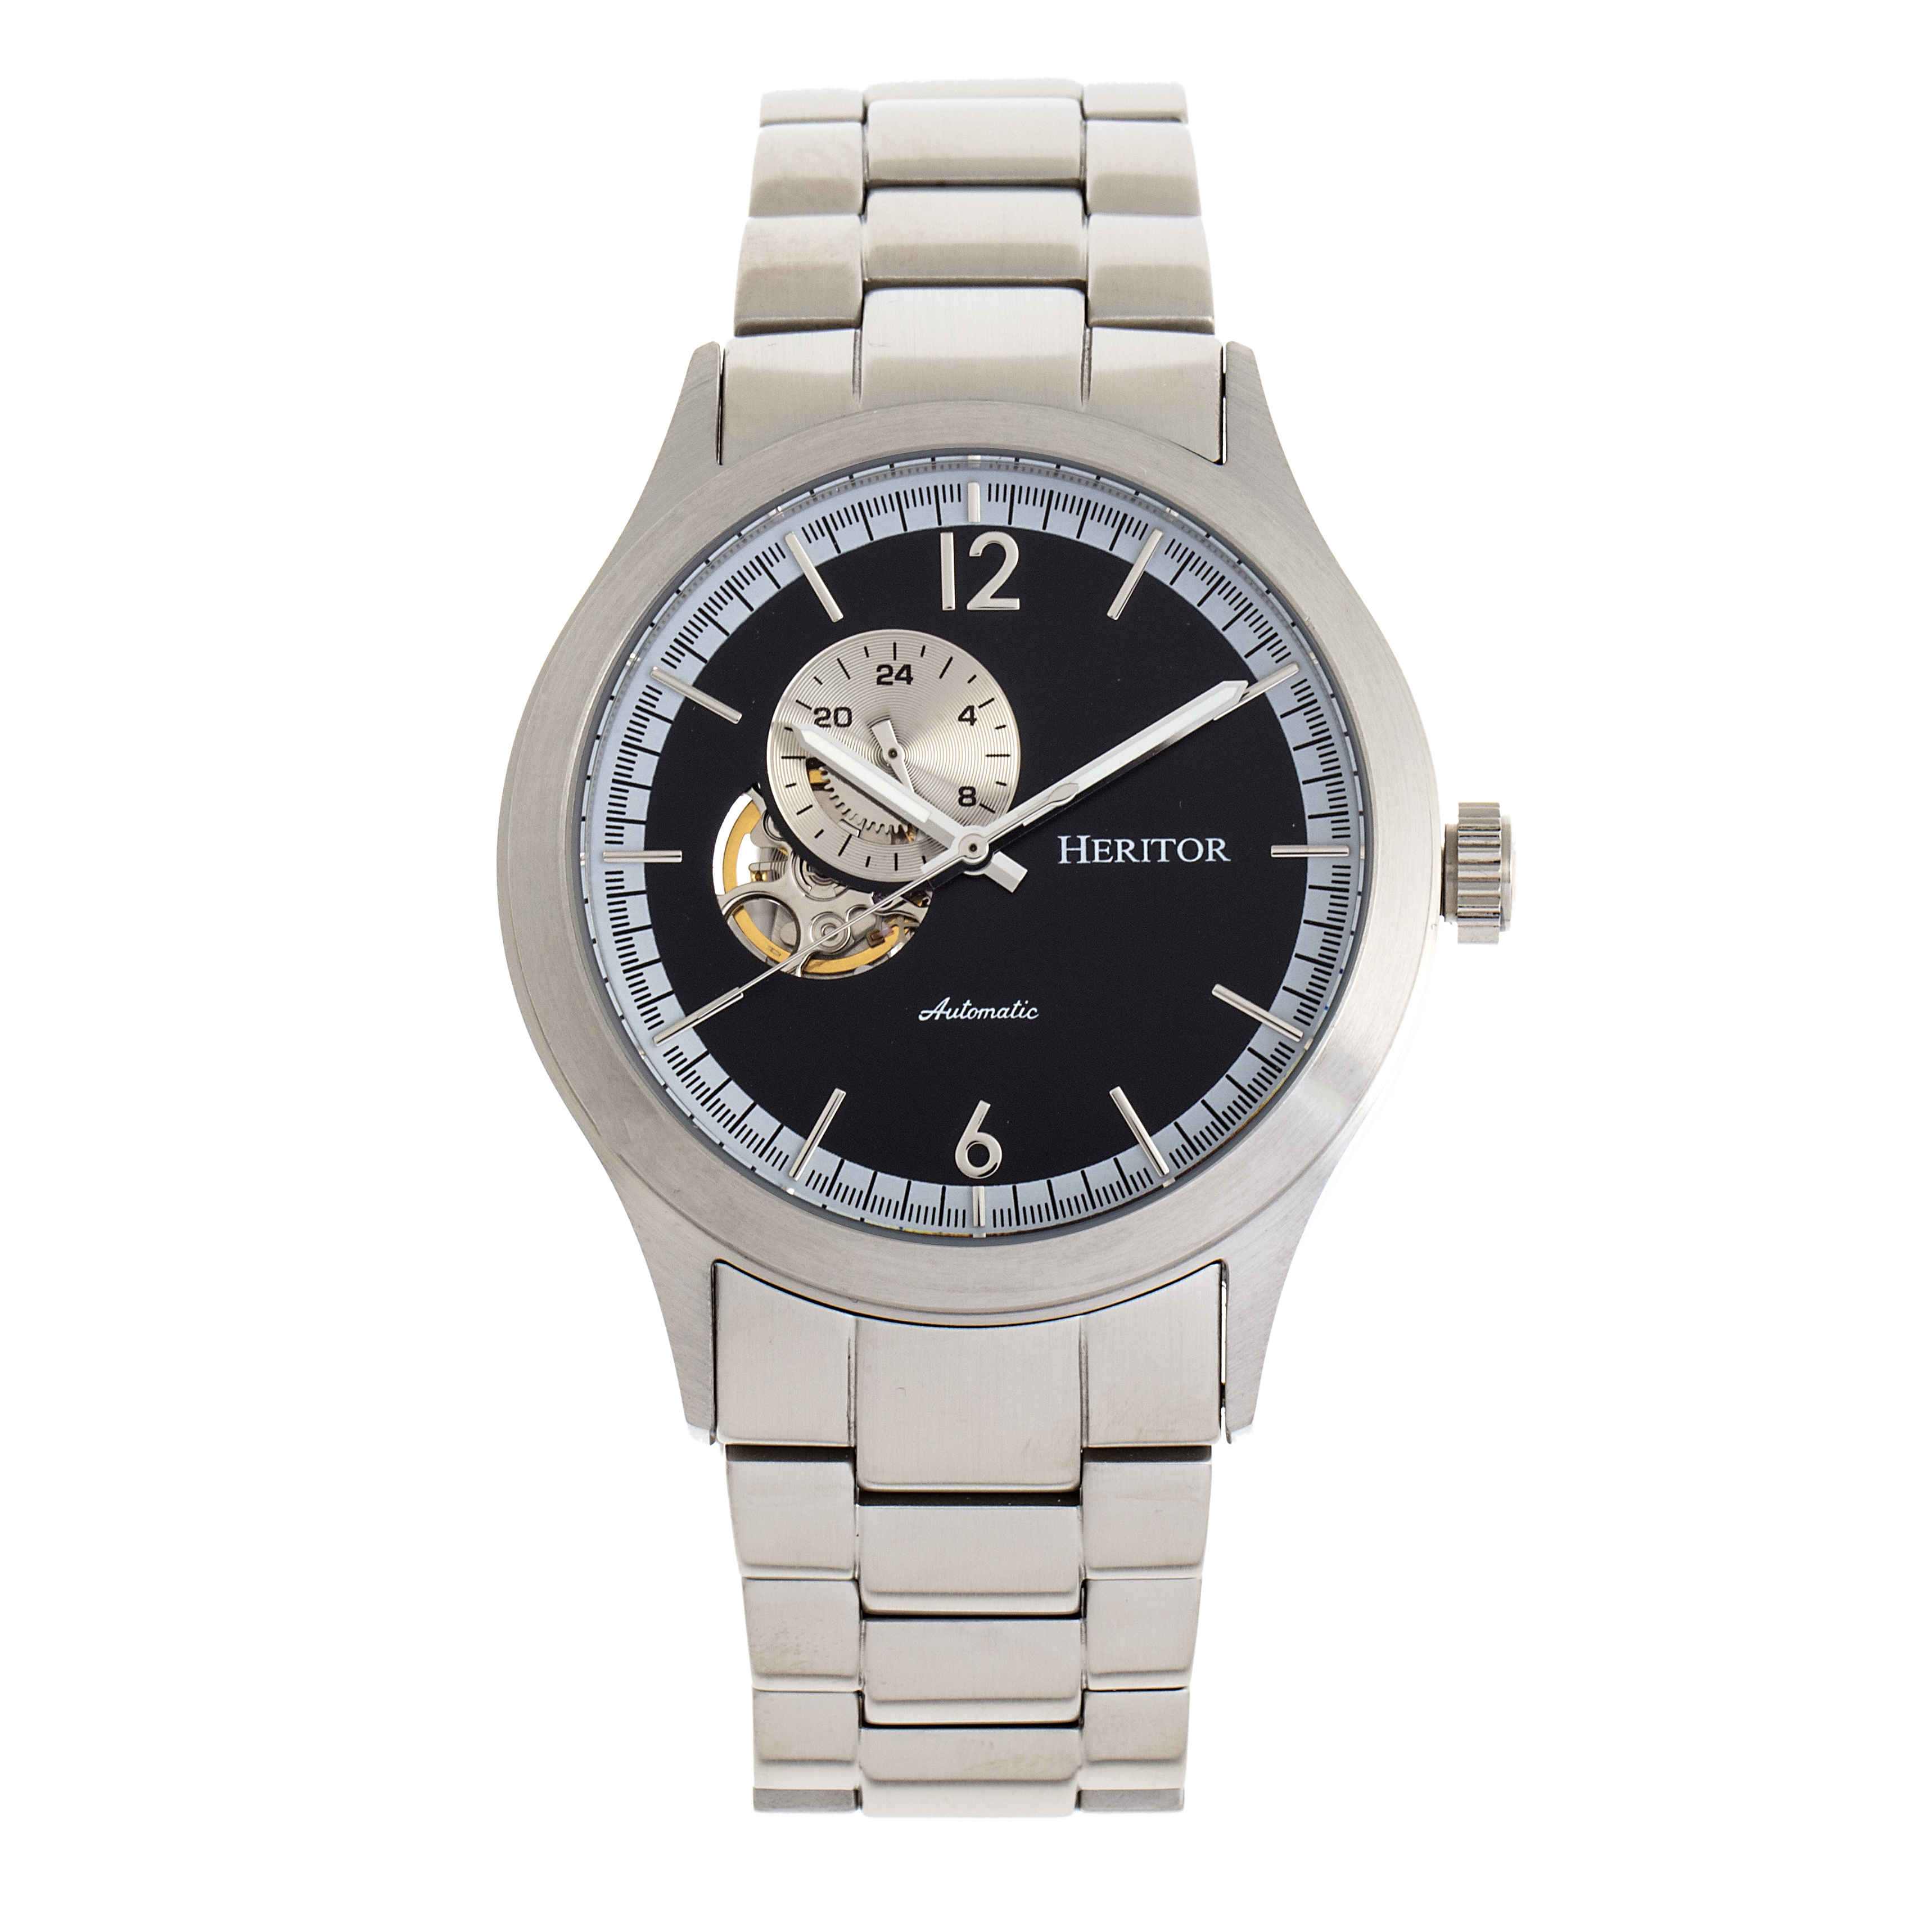 Heritor Antoine Automatic Black Dial Mens Watch Hr8502 In Black,silver Tone